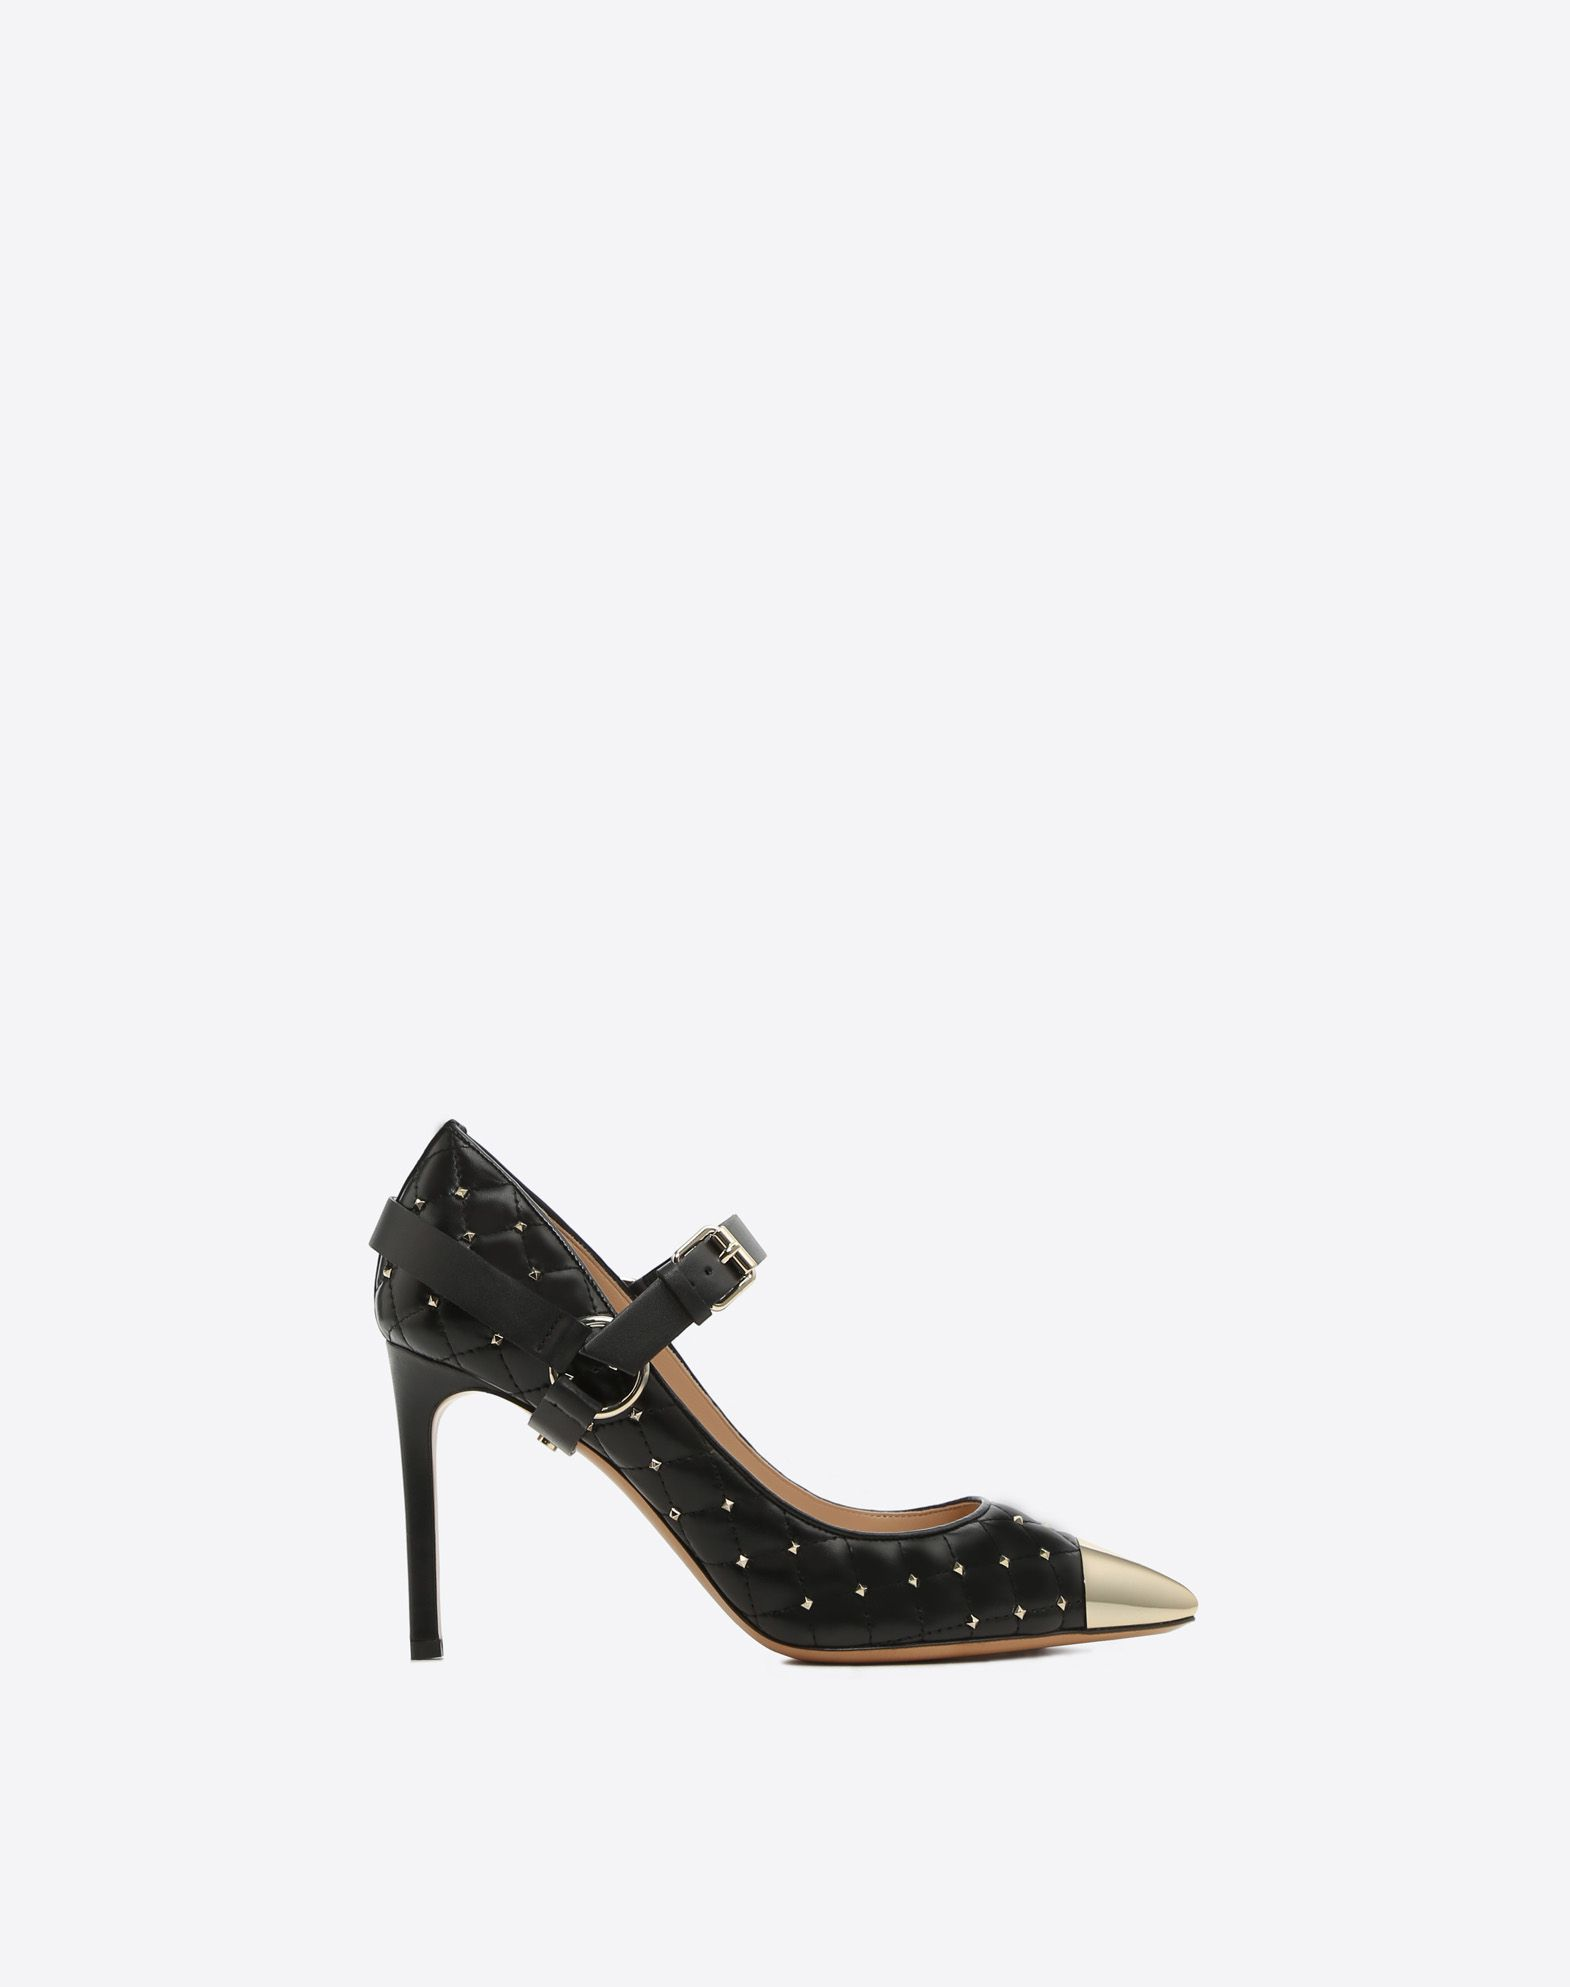 Valentino Garavani Rockstud Spike leather pumps jCTXpc4